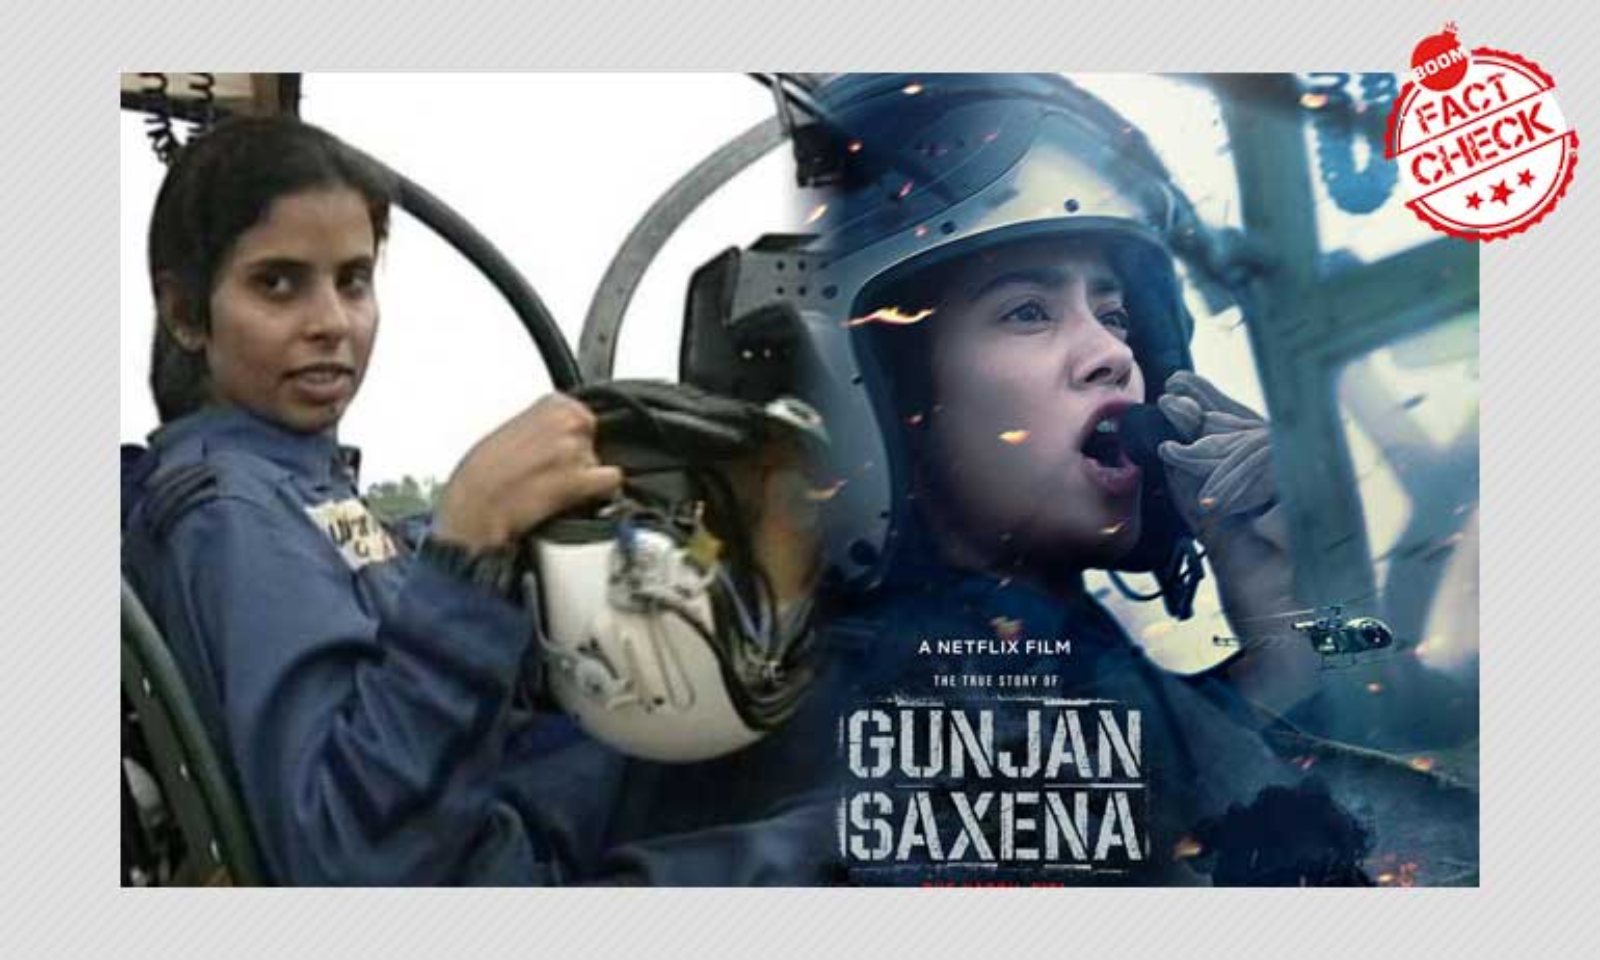 Gunjan Saxena The Kargil Girl Claims And Counter Claims What We Know